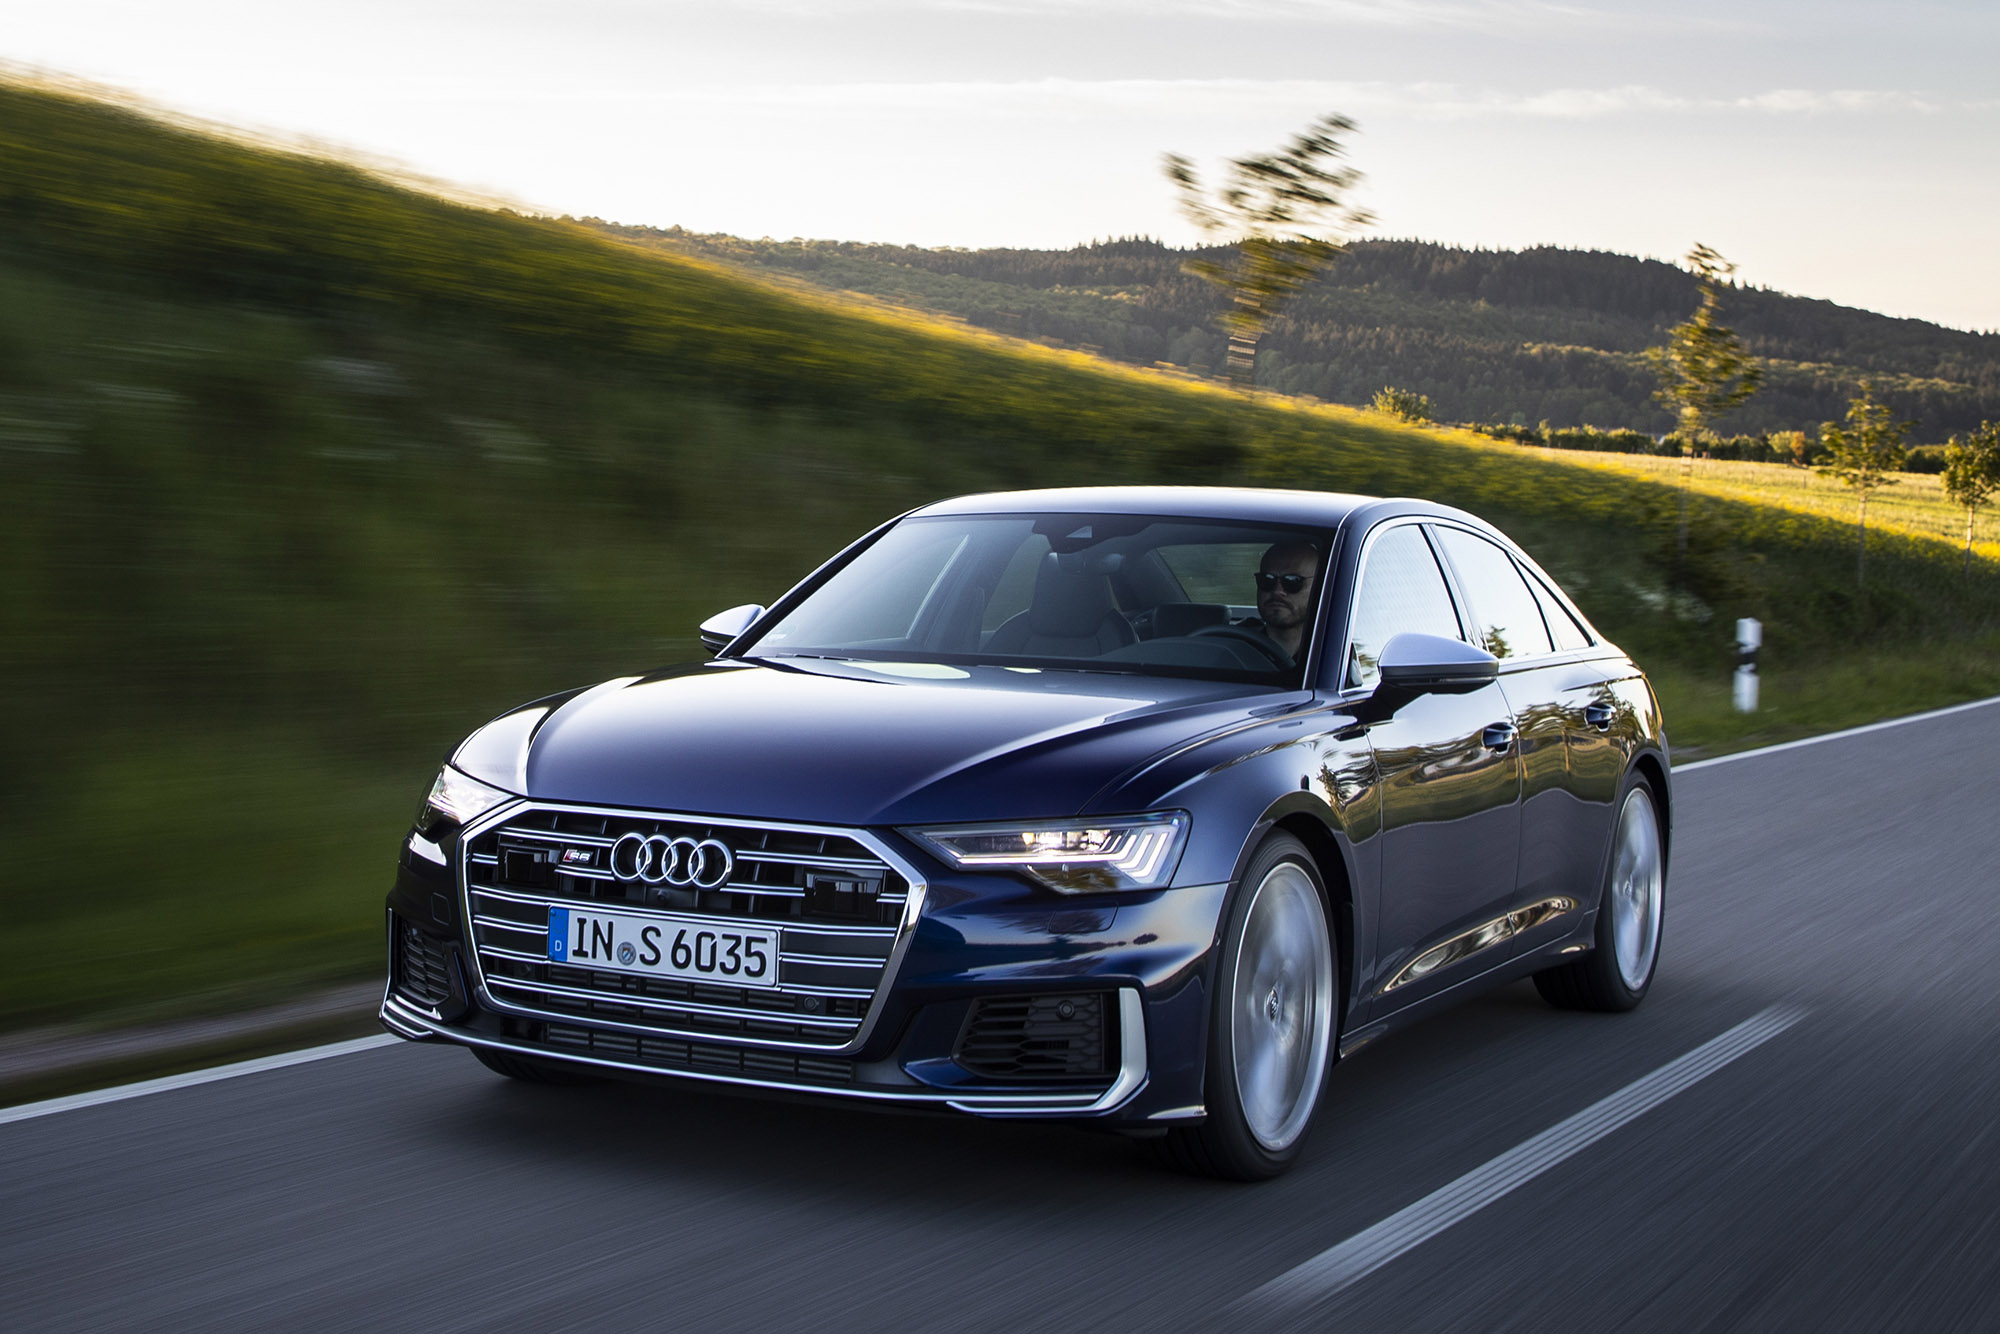 2020 Audi S6 Returns to Spice Up A6 Sedan Lineup